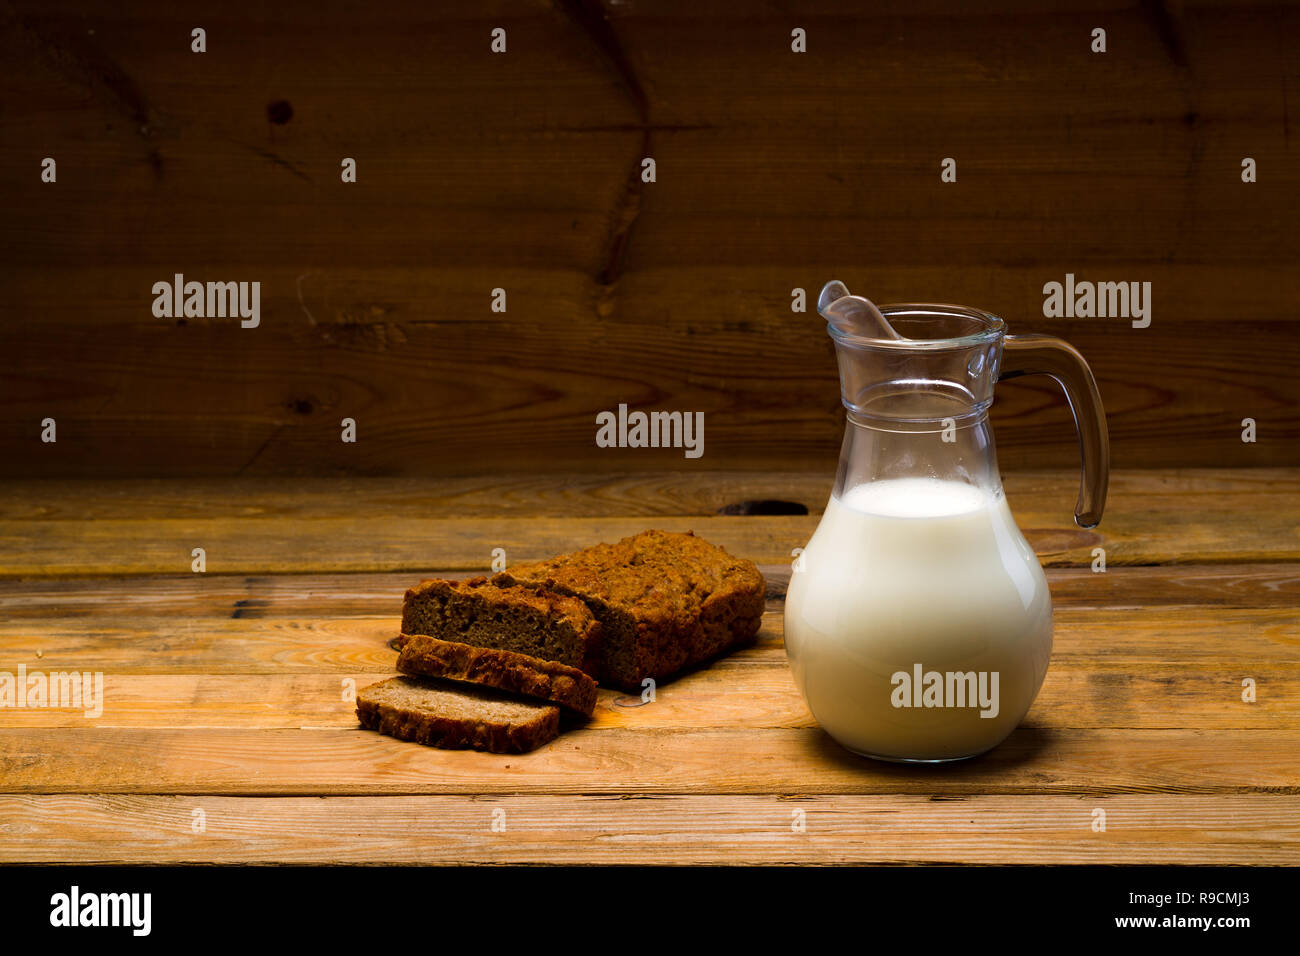 Milk from a glass jug poured into a glass, a loaf of rye bread, ears of corn on the background of wooden boards, studio light - Stock Image